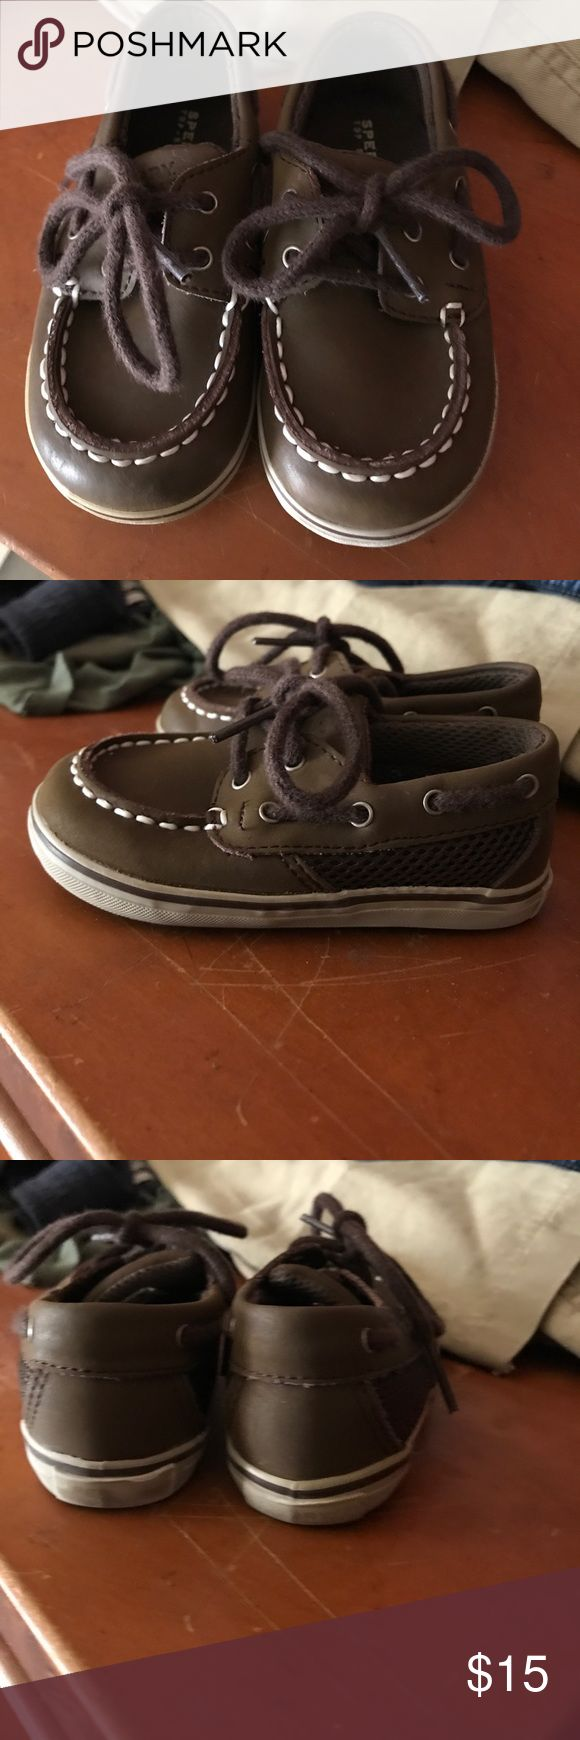 Baby sperry top siders Excellent condition size 4M sperrys. Sperry Top-Sider Shoes